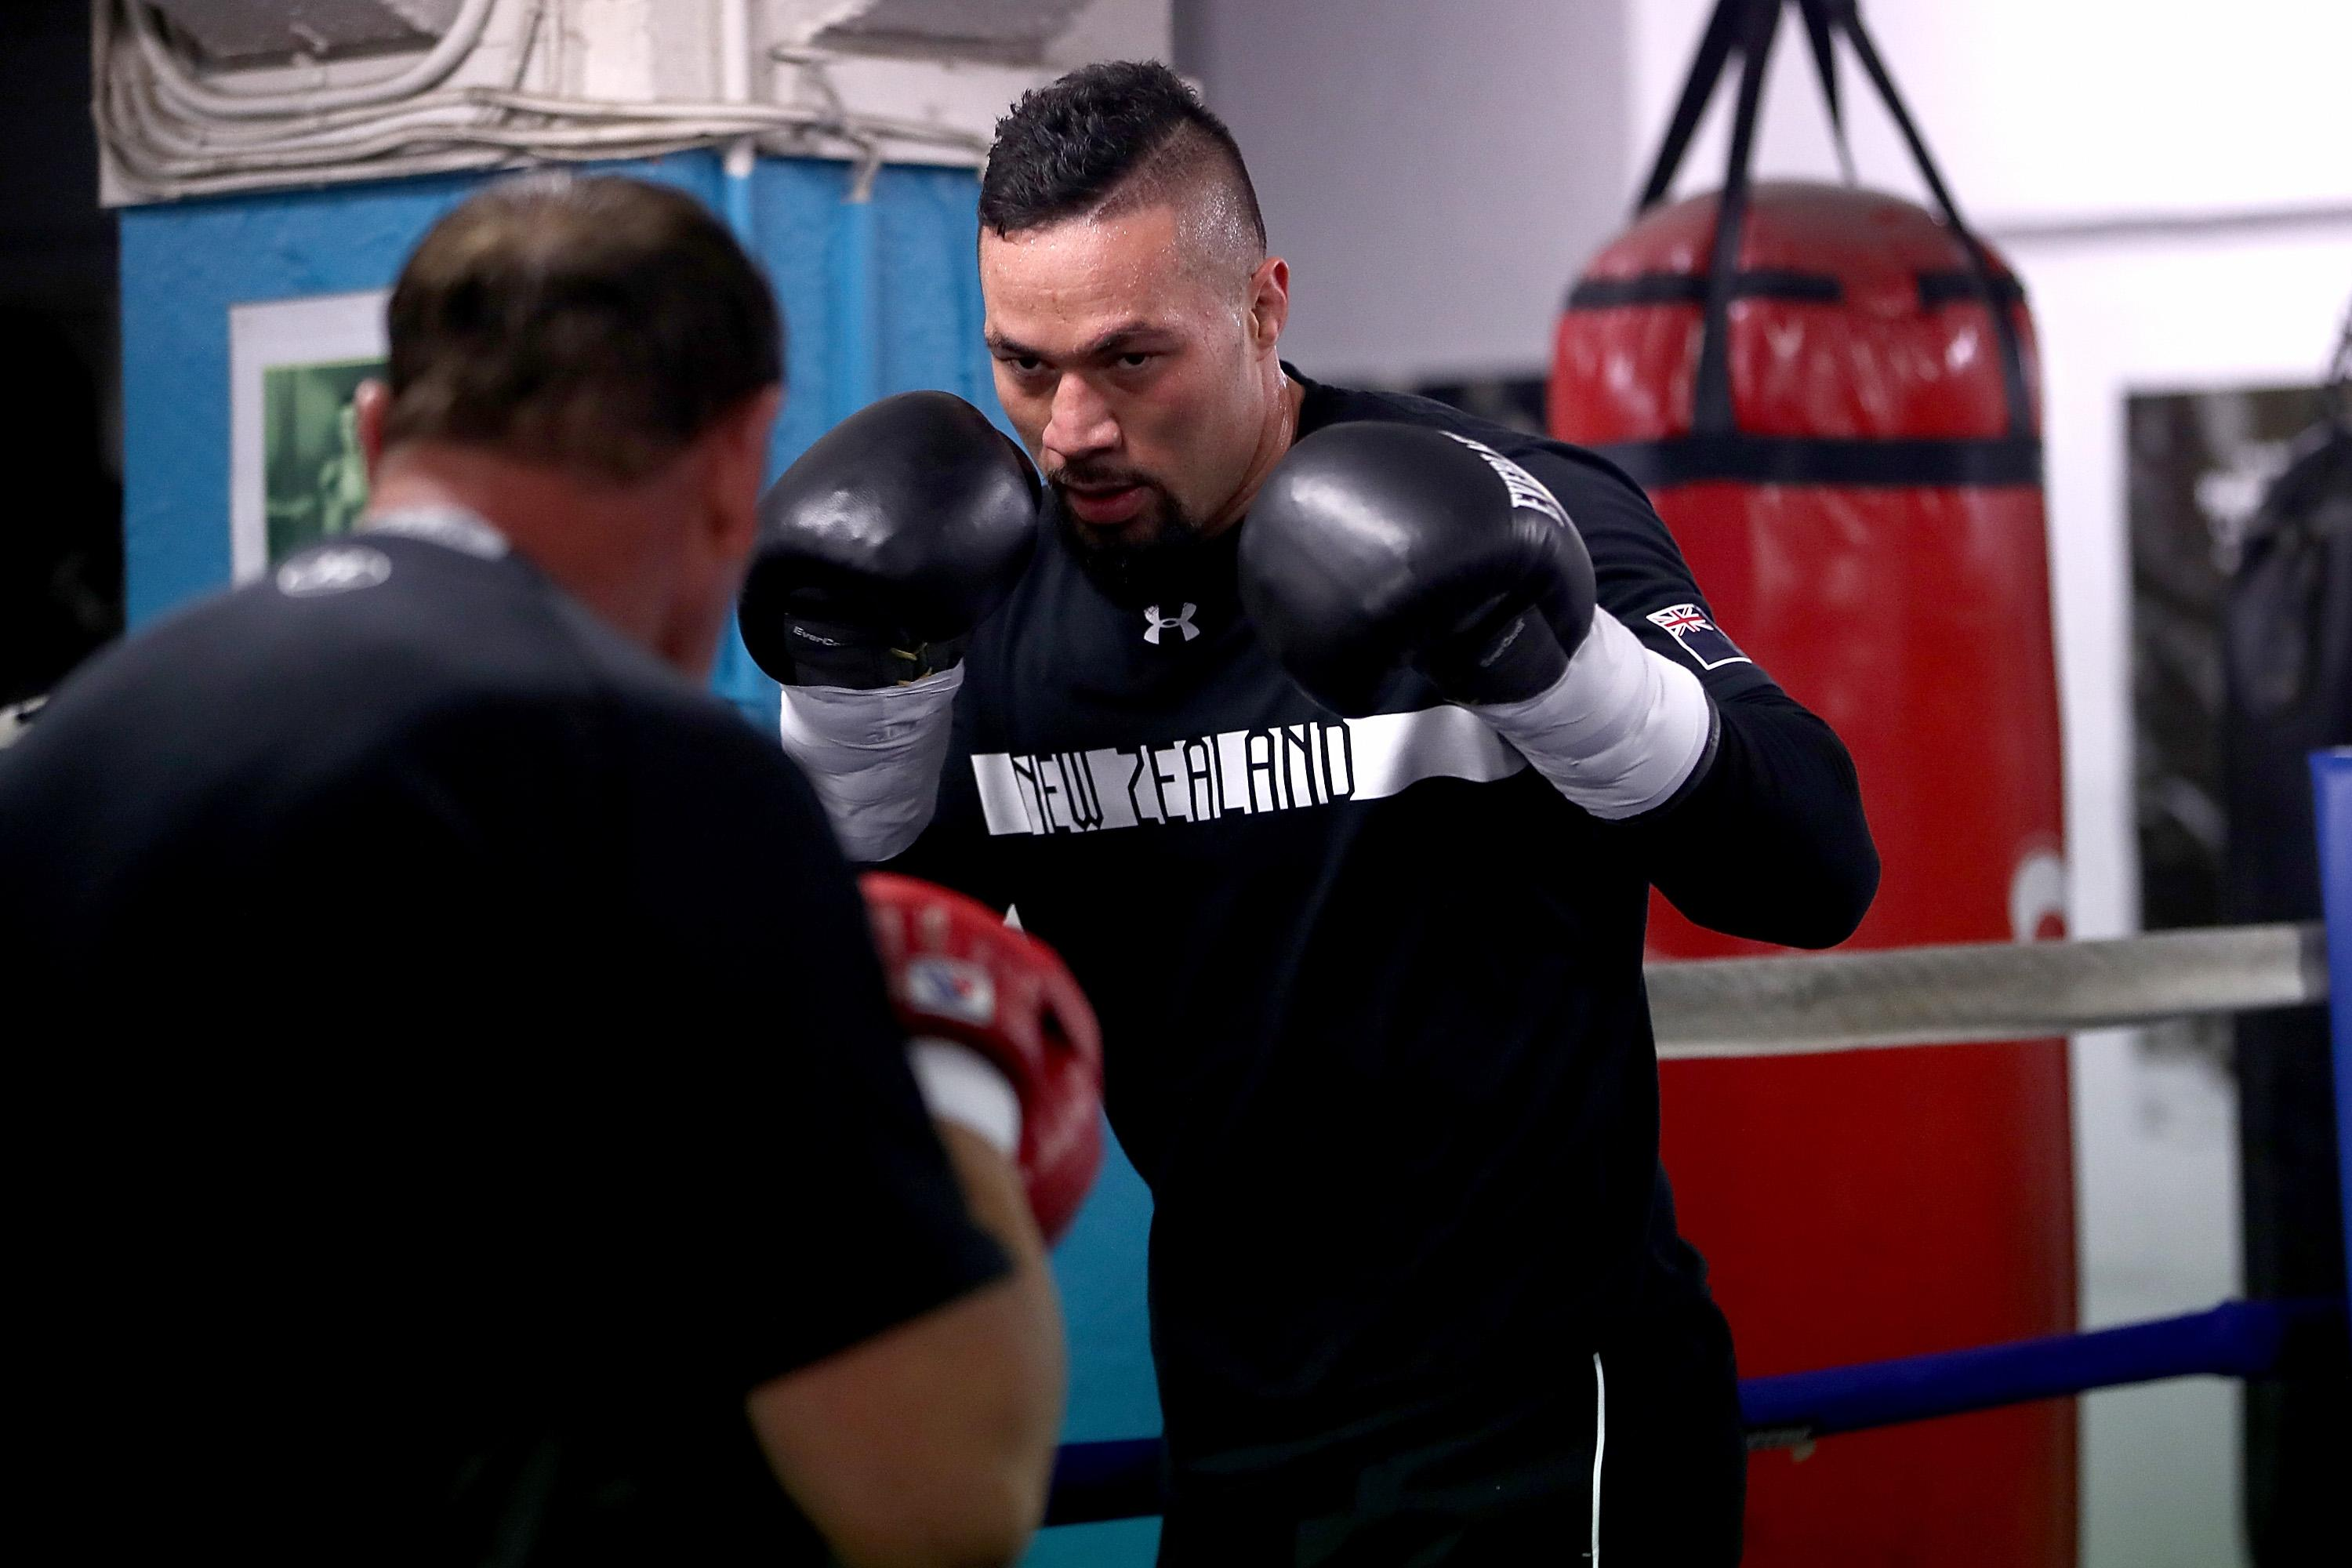 Joseph Parker underwent TWO elbow surgeries ahead of his fight with Anthony Joshua